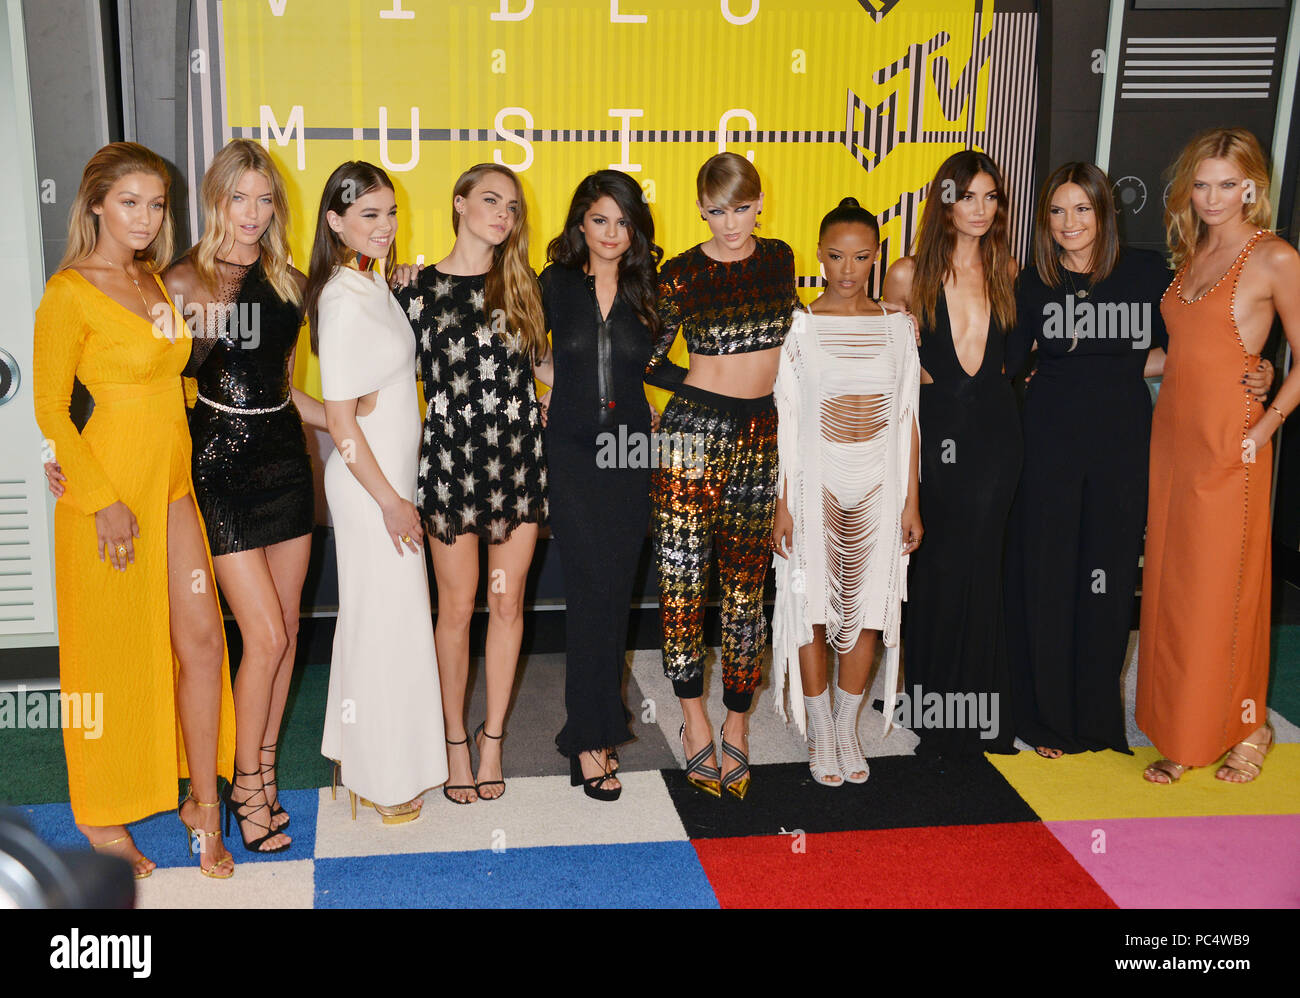 37bb6f00 Gigi Hadid and Martha Hunt, actress Hailee Steinfeld, model Cara  Delevingne, recording artists Selena Gomez and Taylor Swift, actress  Serayah McNeill, ...